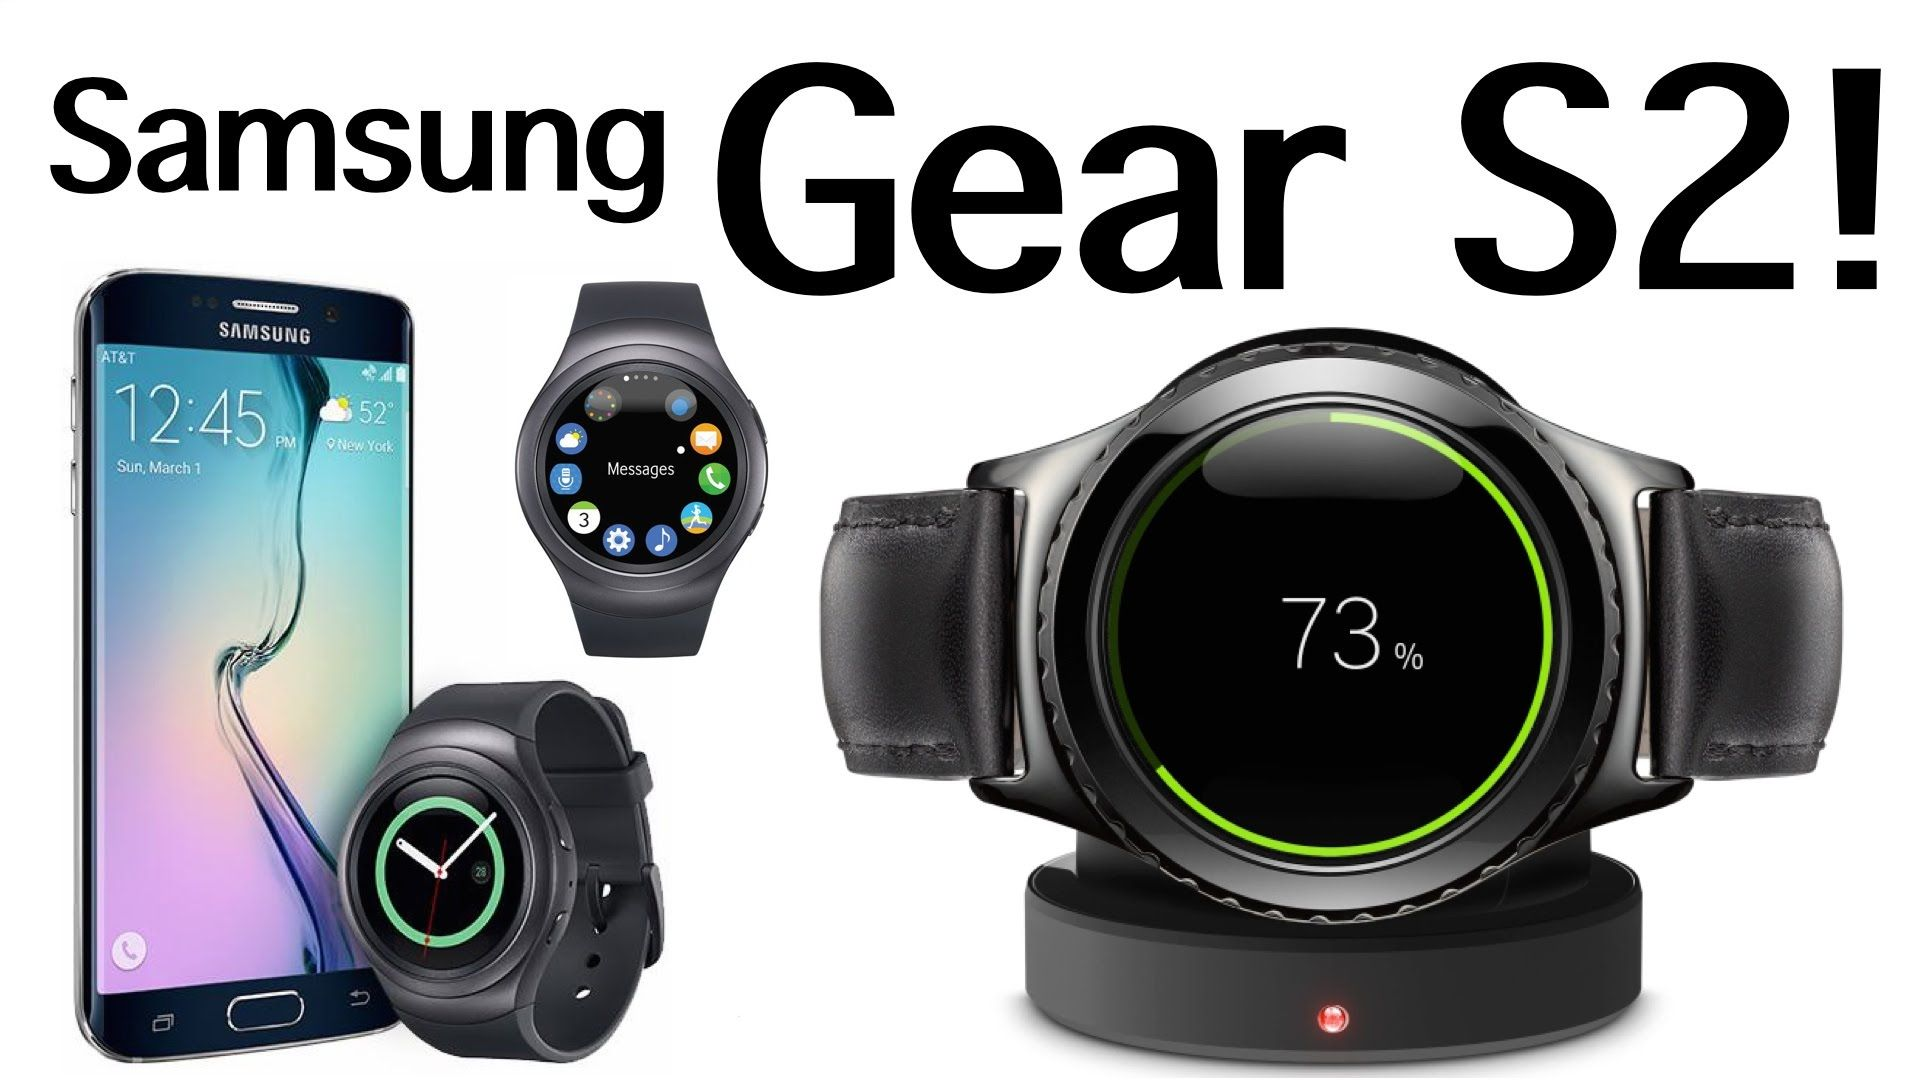 Samsung Gear S2 SmartWatch Unboxing